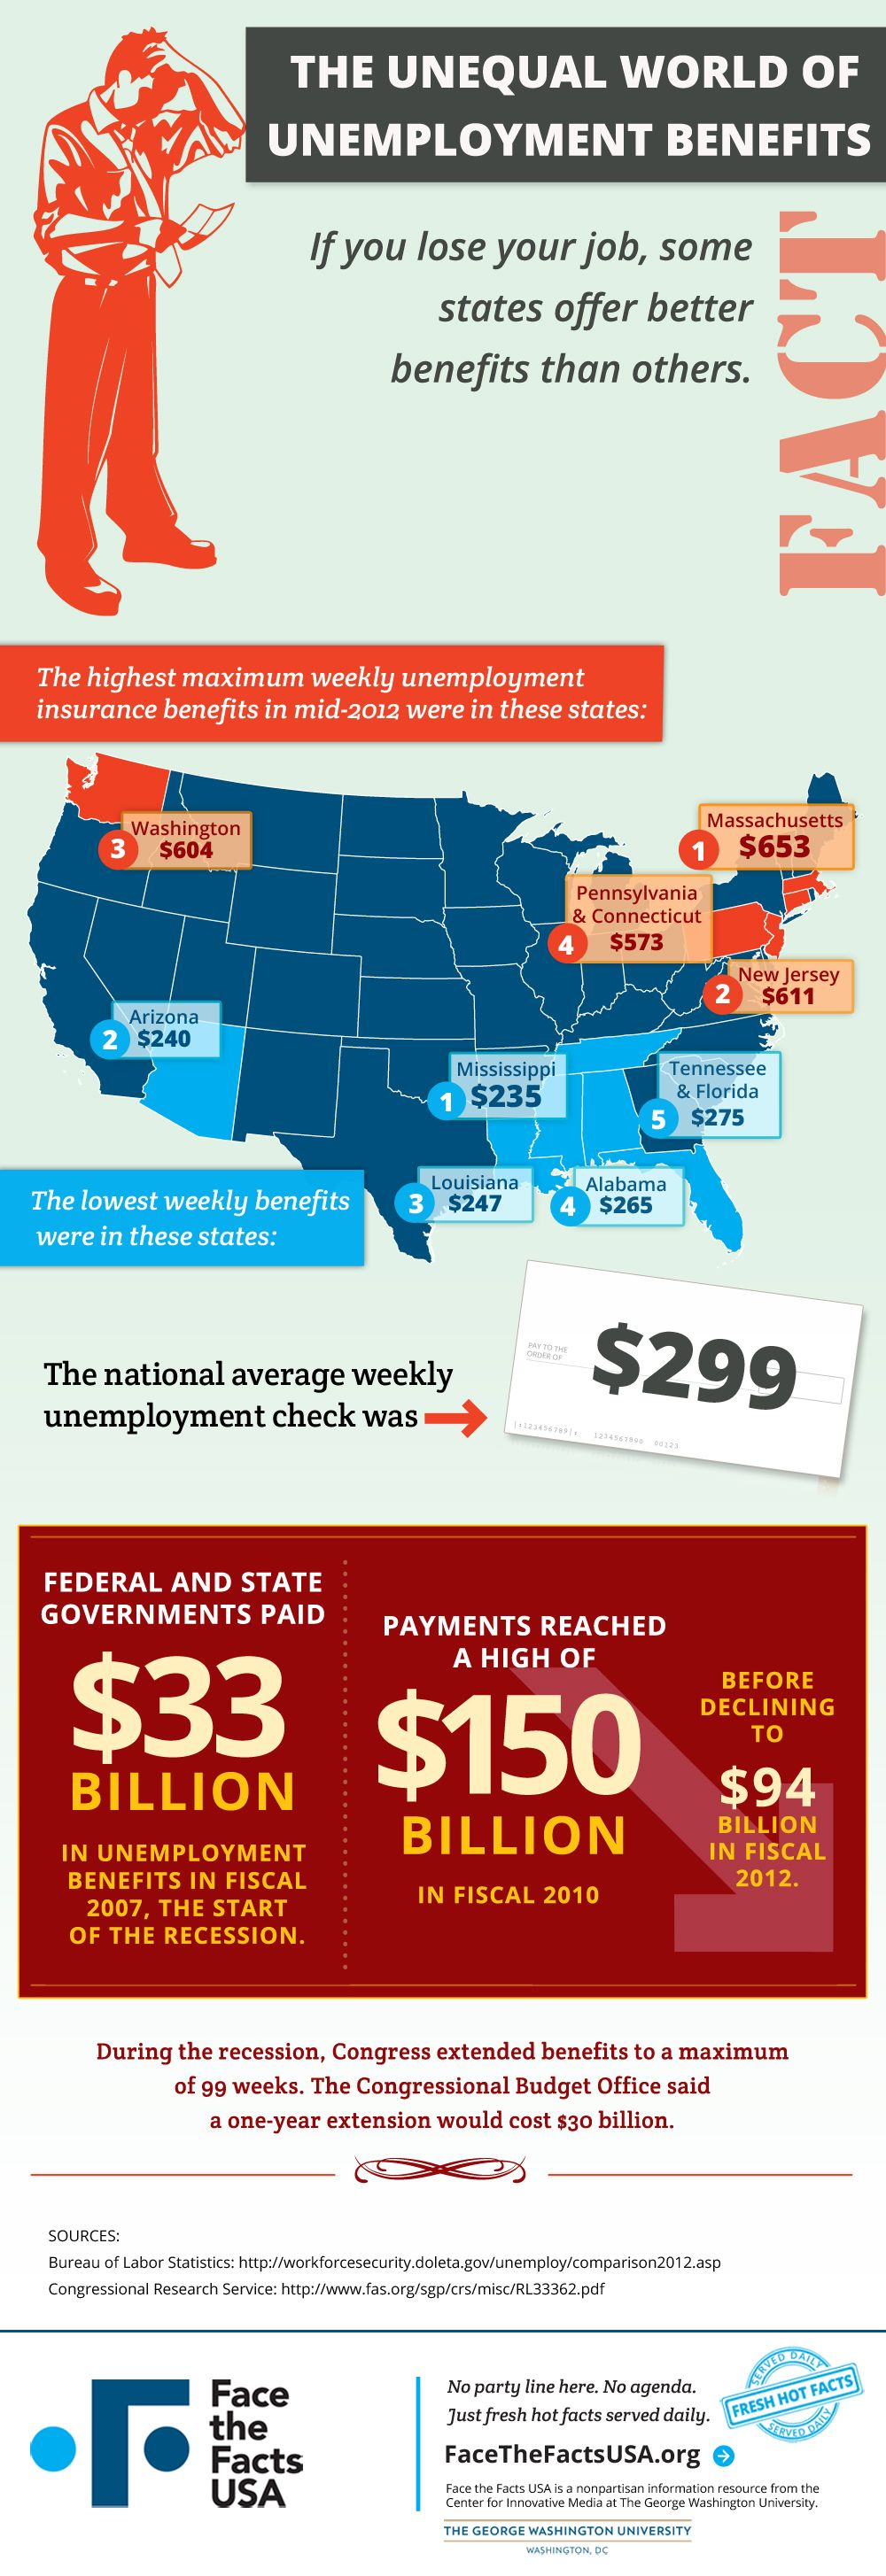 Federal and state governments paid 94 billion in